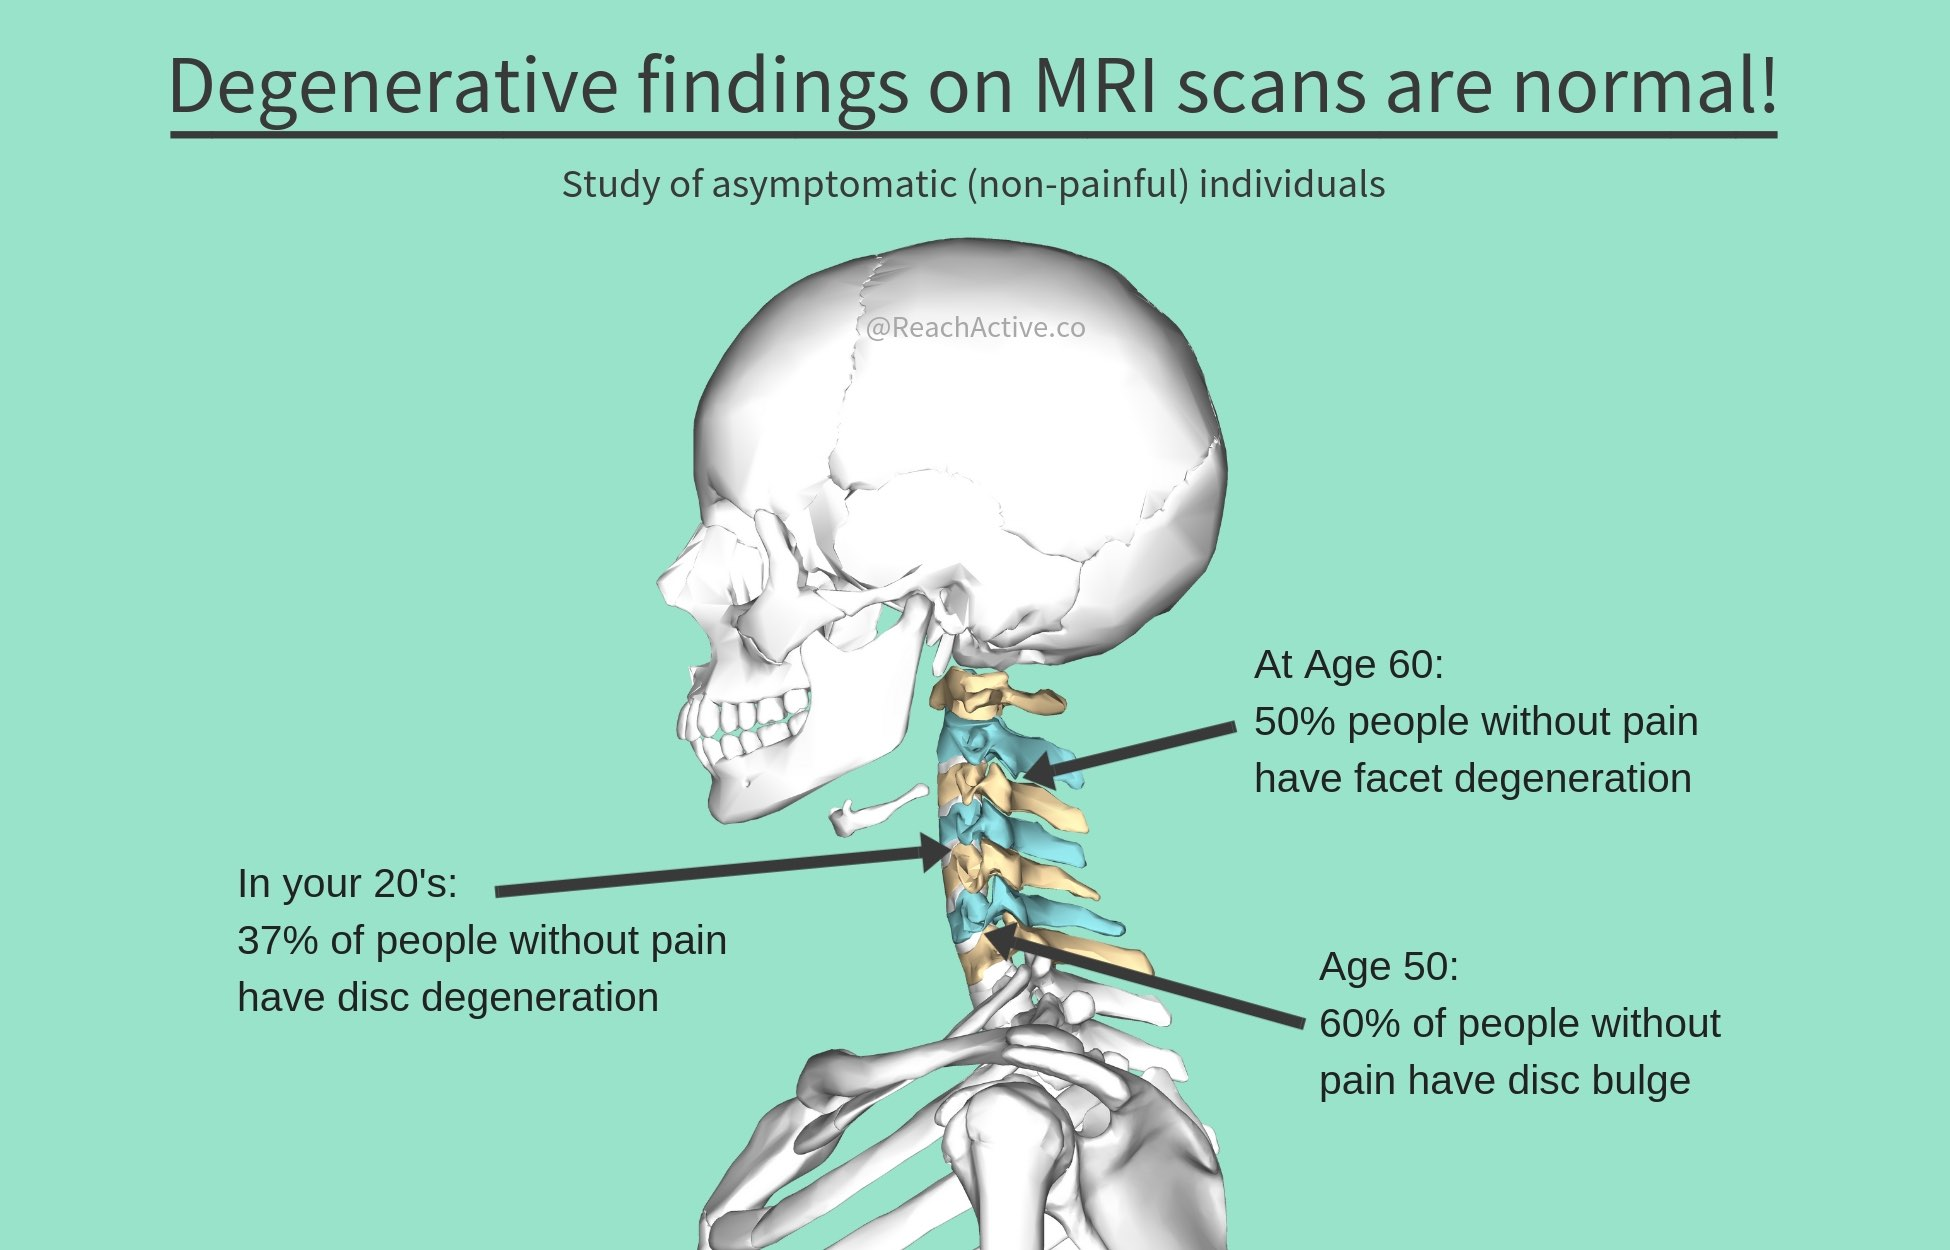 Reference:  Nakashima H, Yukawa Y, Suda K, Yamagata M, Ueta T, Kato F. Abnormal findings on magnetic resonance images of the cervical spines in 1211 asymptomatic subjects. Spine. 2015 Mar 15;40(6):392–8